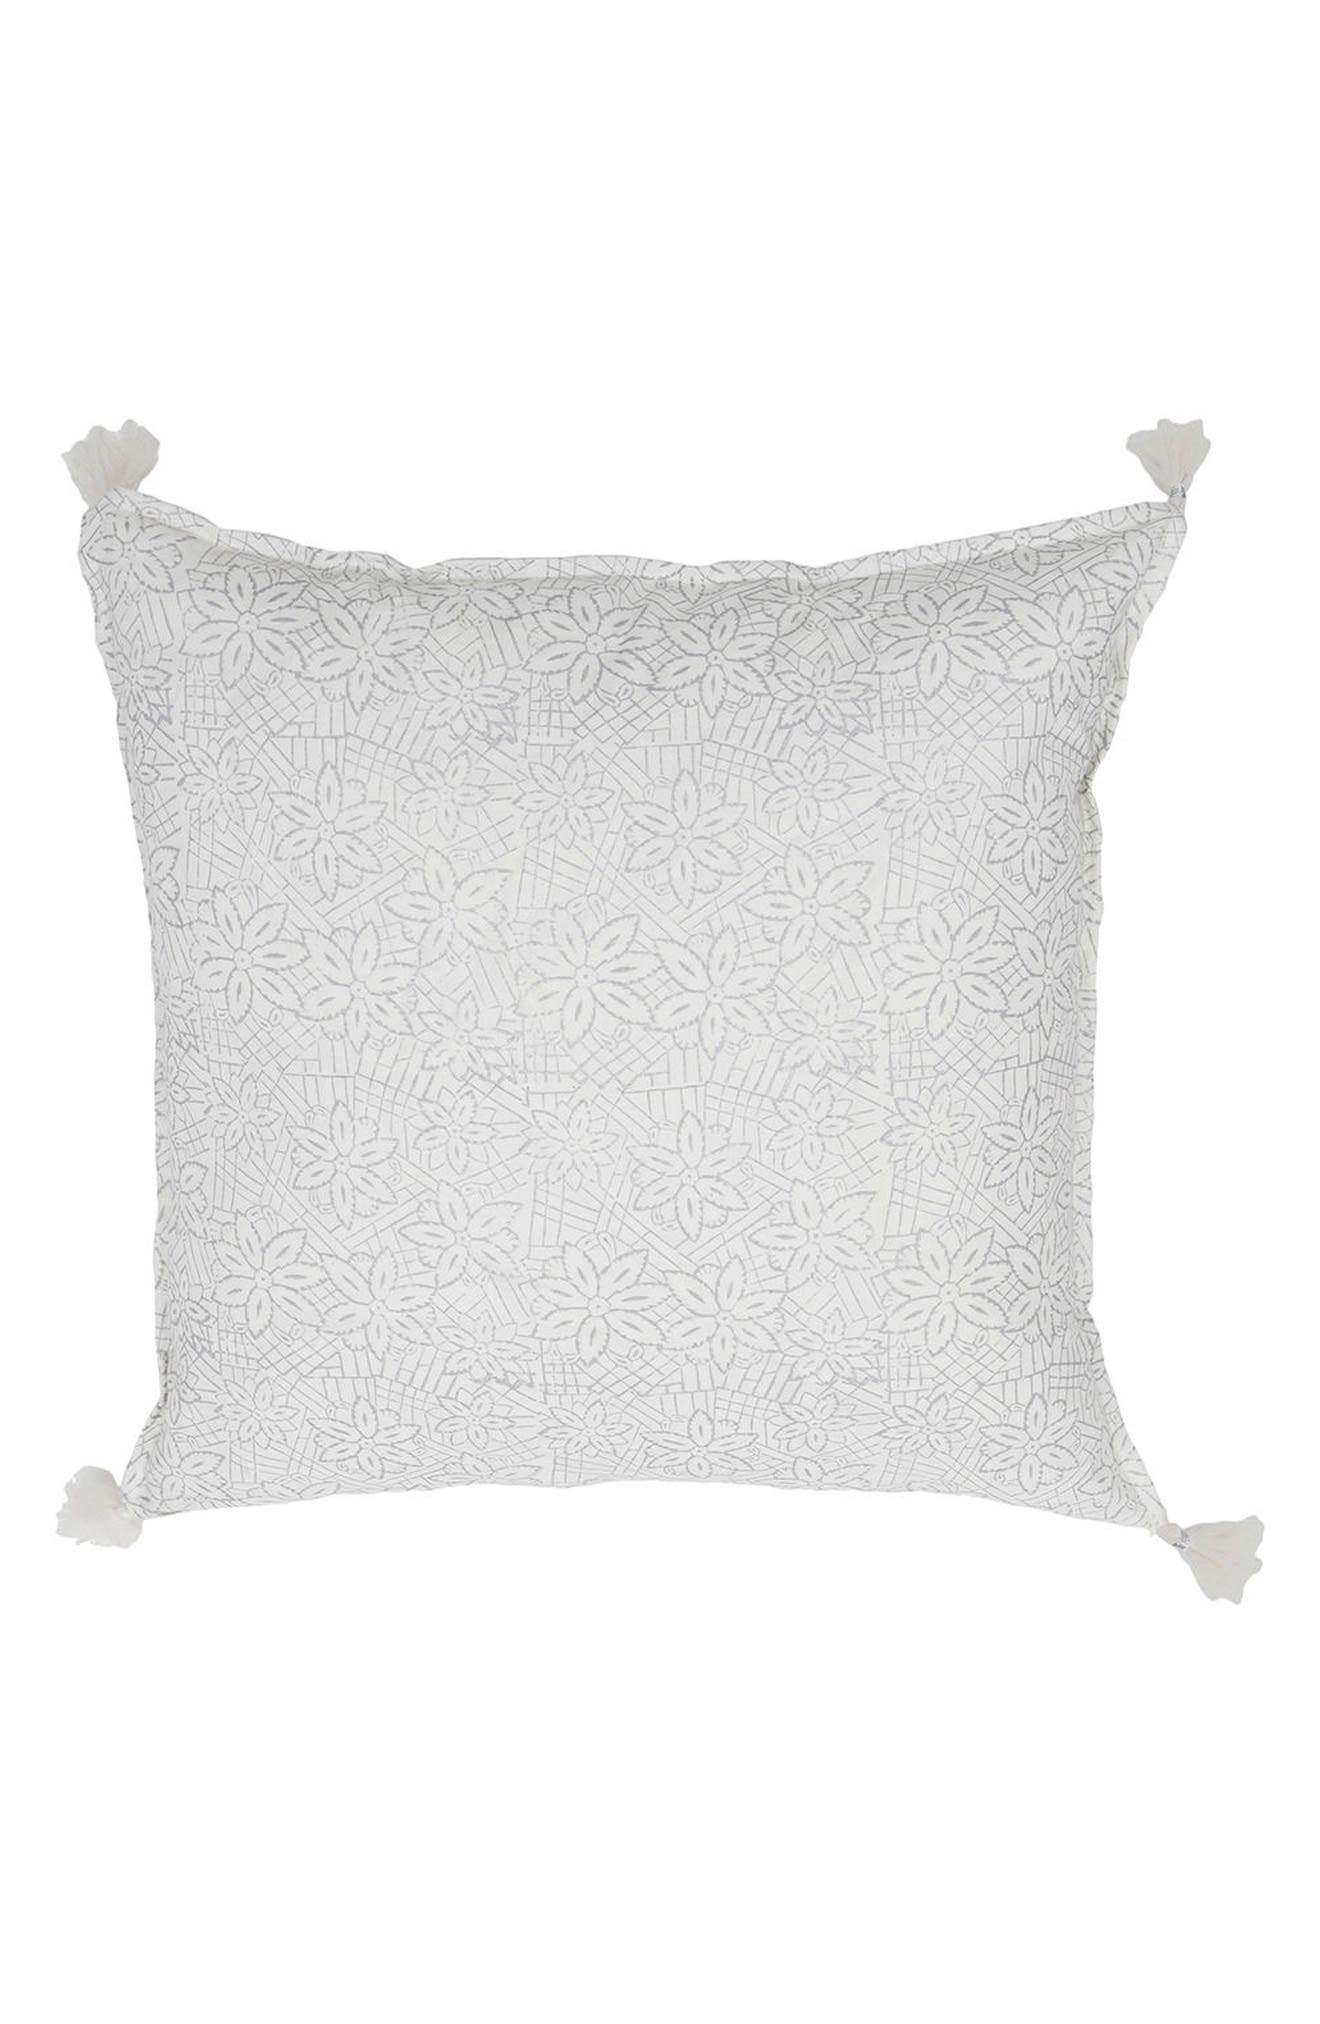 Keya Accent Pillow,                         Main,                         color, SILVER